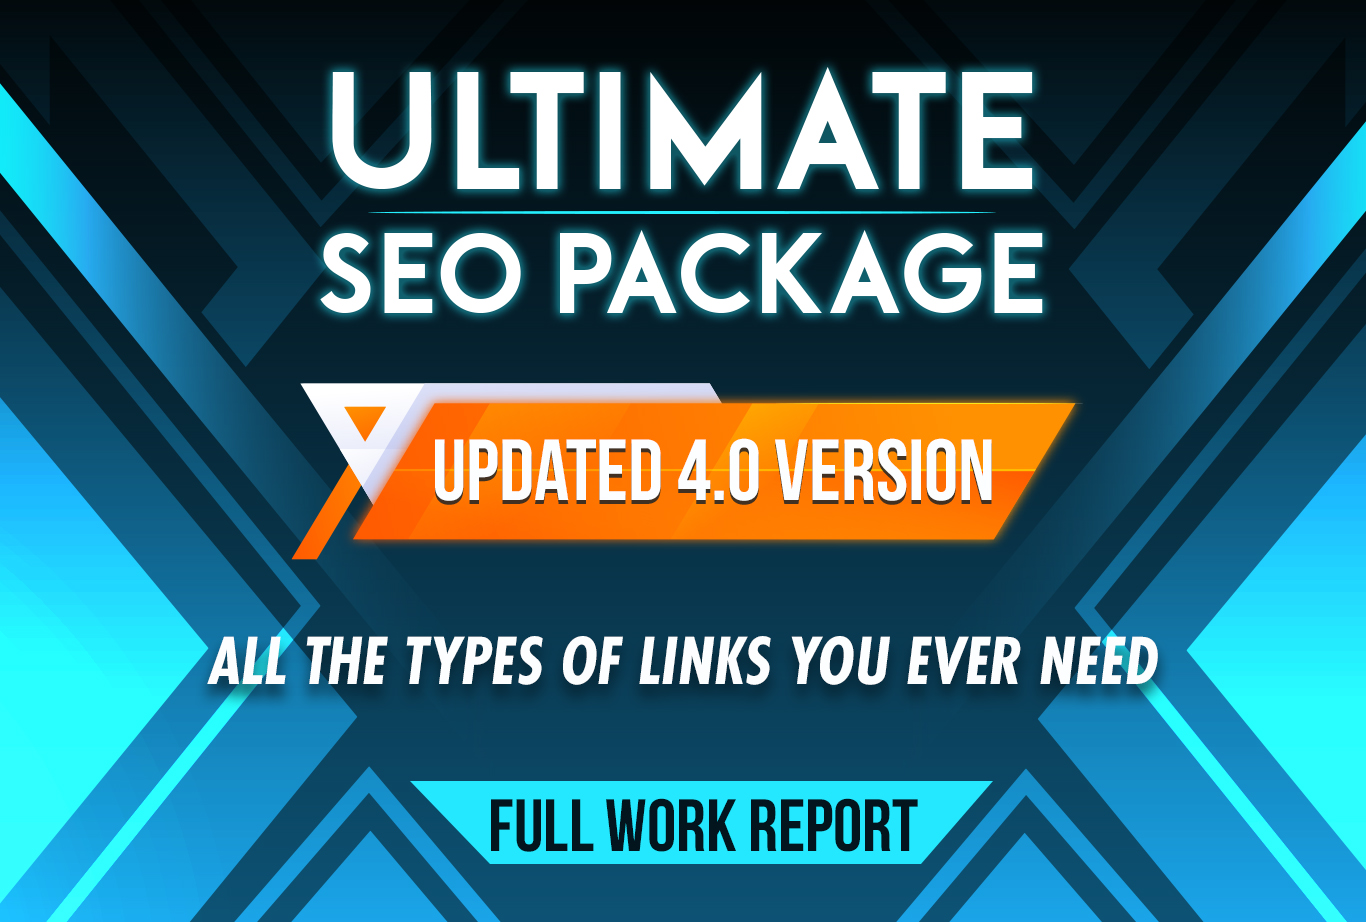 ULTIMATE Seo Package 4.0 updated with FULL Report